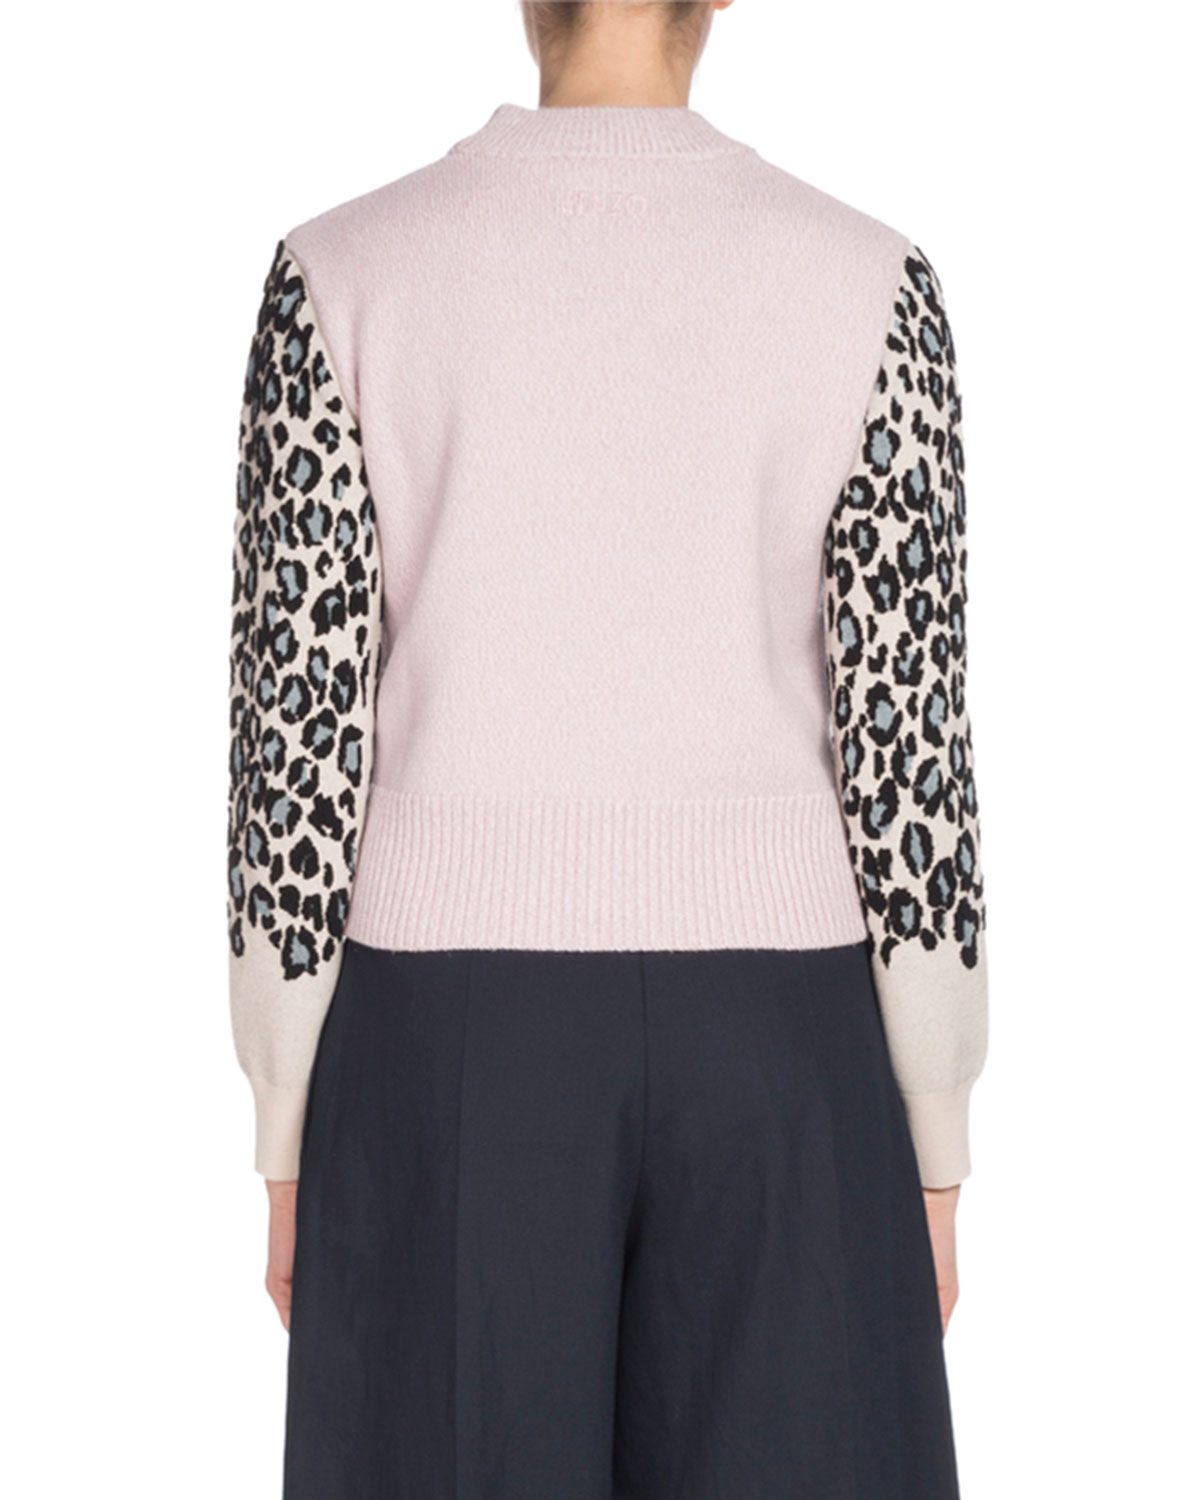 87ad54a0bb Kenzo Leopard-Print Wool Pullover Sweater   Neiman Marcus